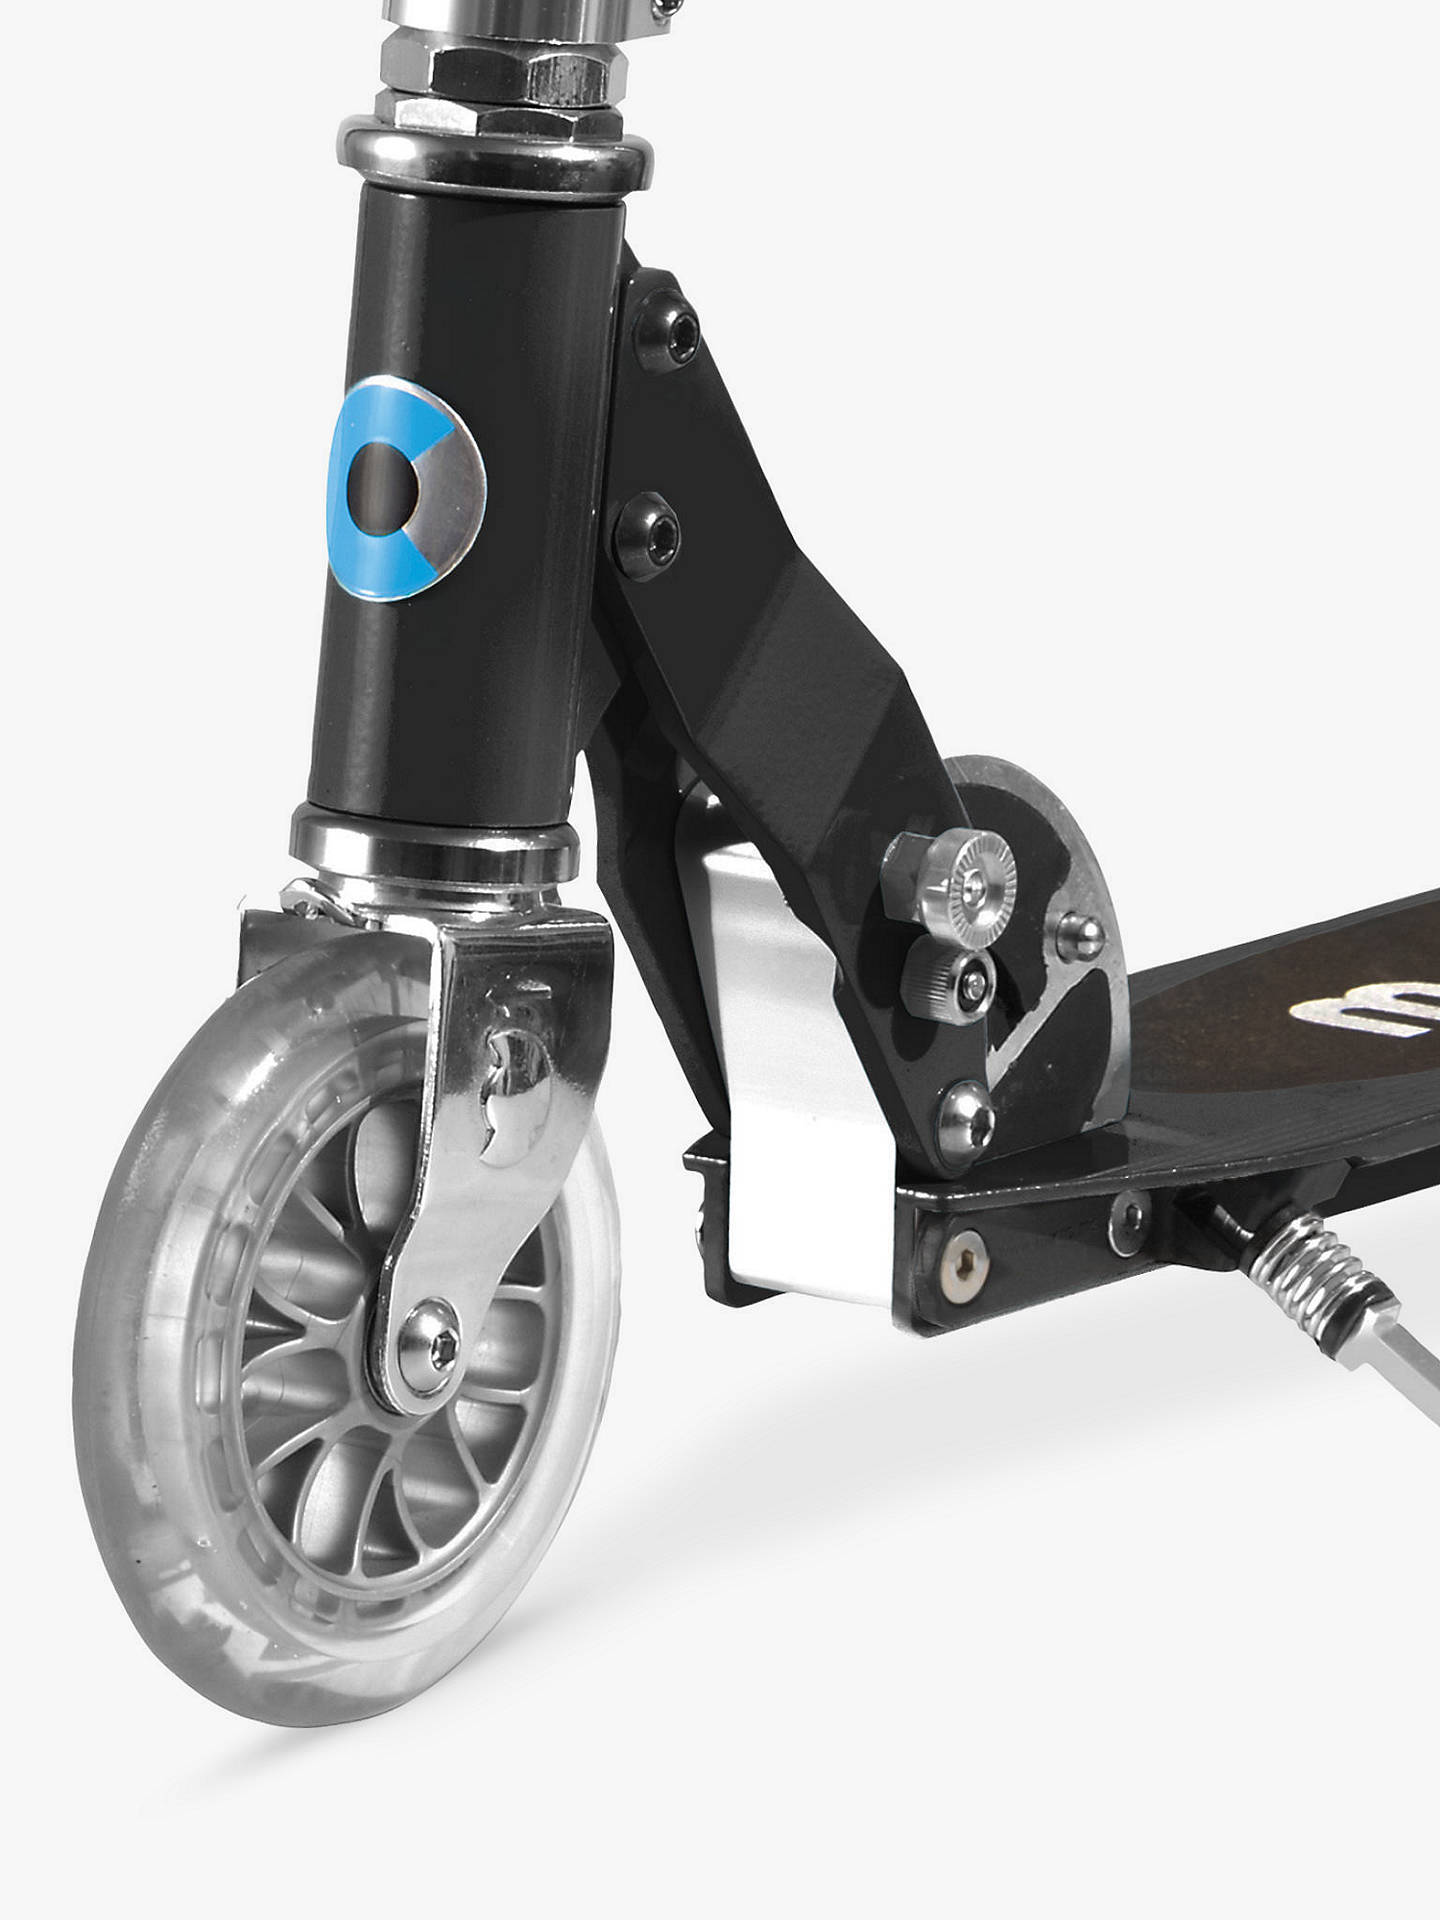 BuyMicro Sprite Scooter, 5-12 years, Black Online at johnlewis.com